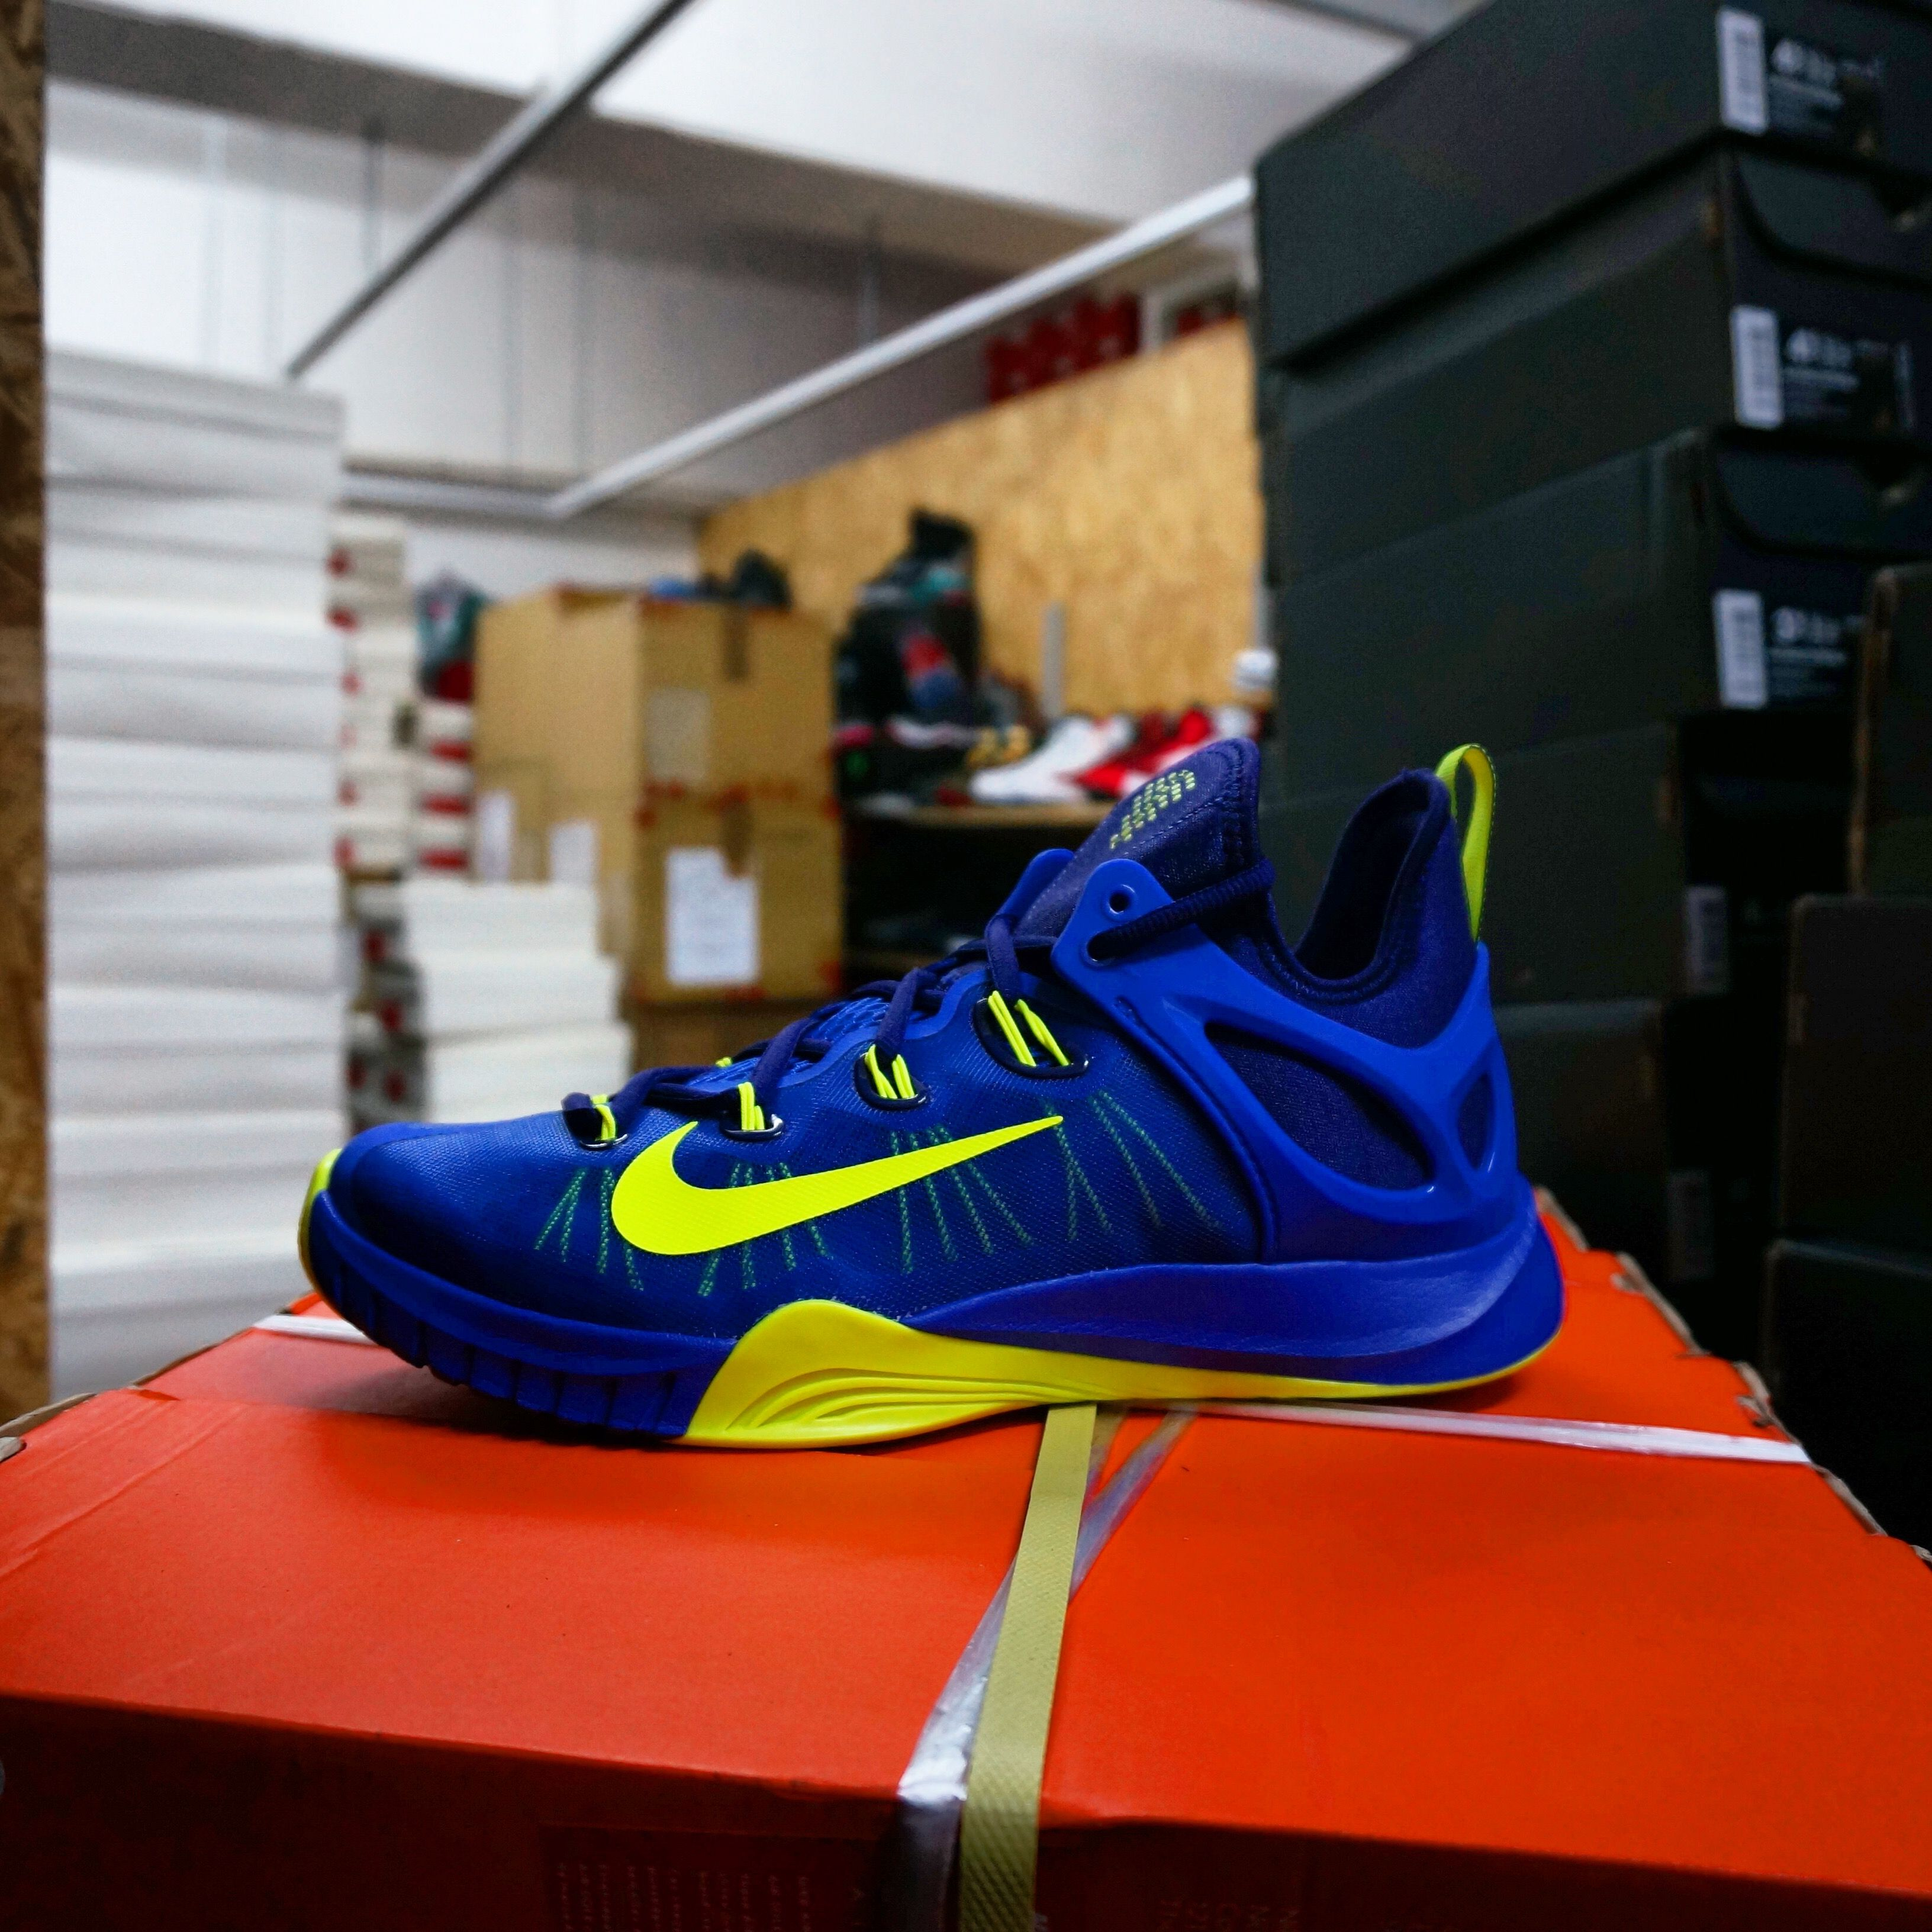 100% authentic 856fa eb140 ... sale blue lagoon blue force bright crimson nike zoom hyperrev 2015  705370 464 mens store online